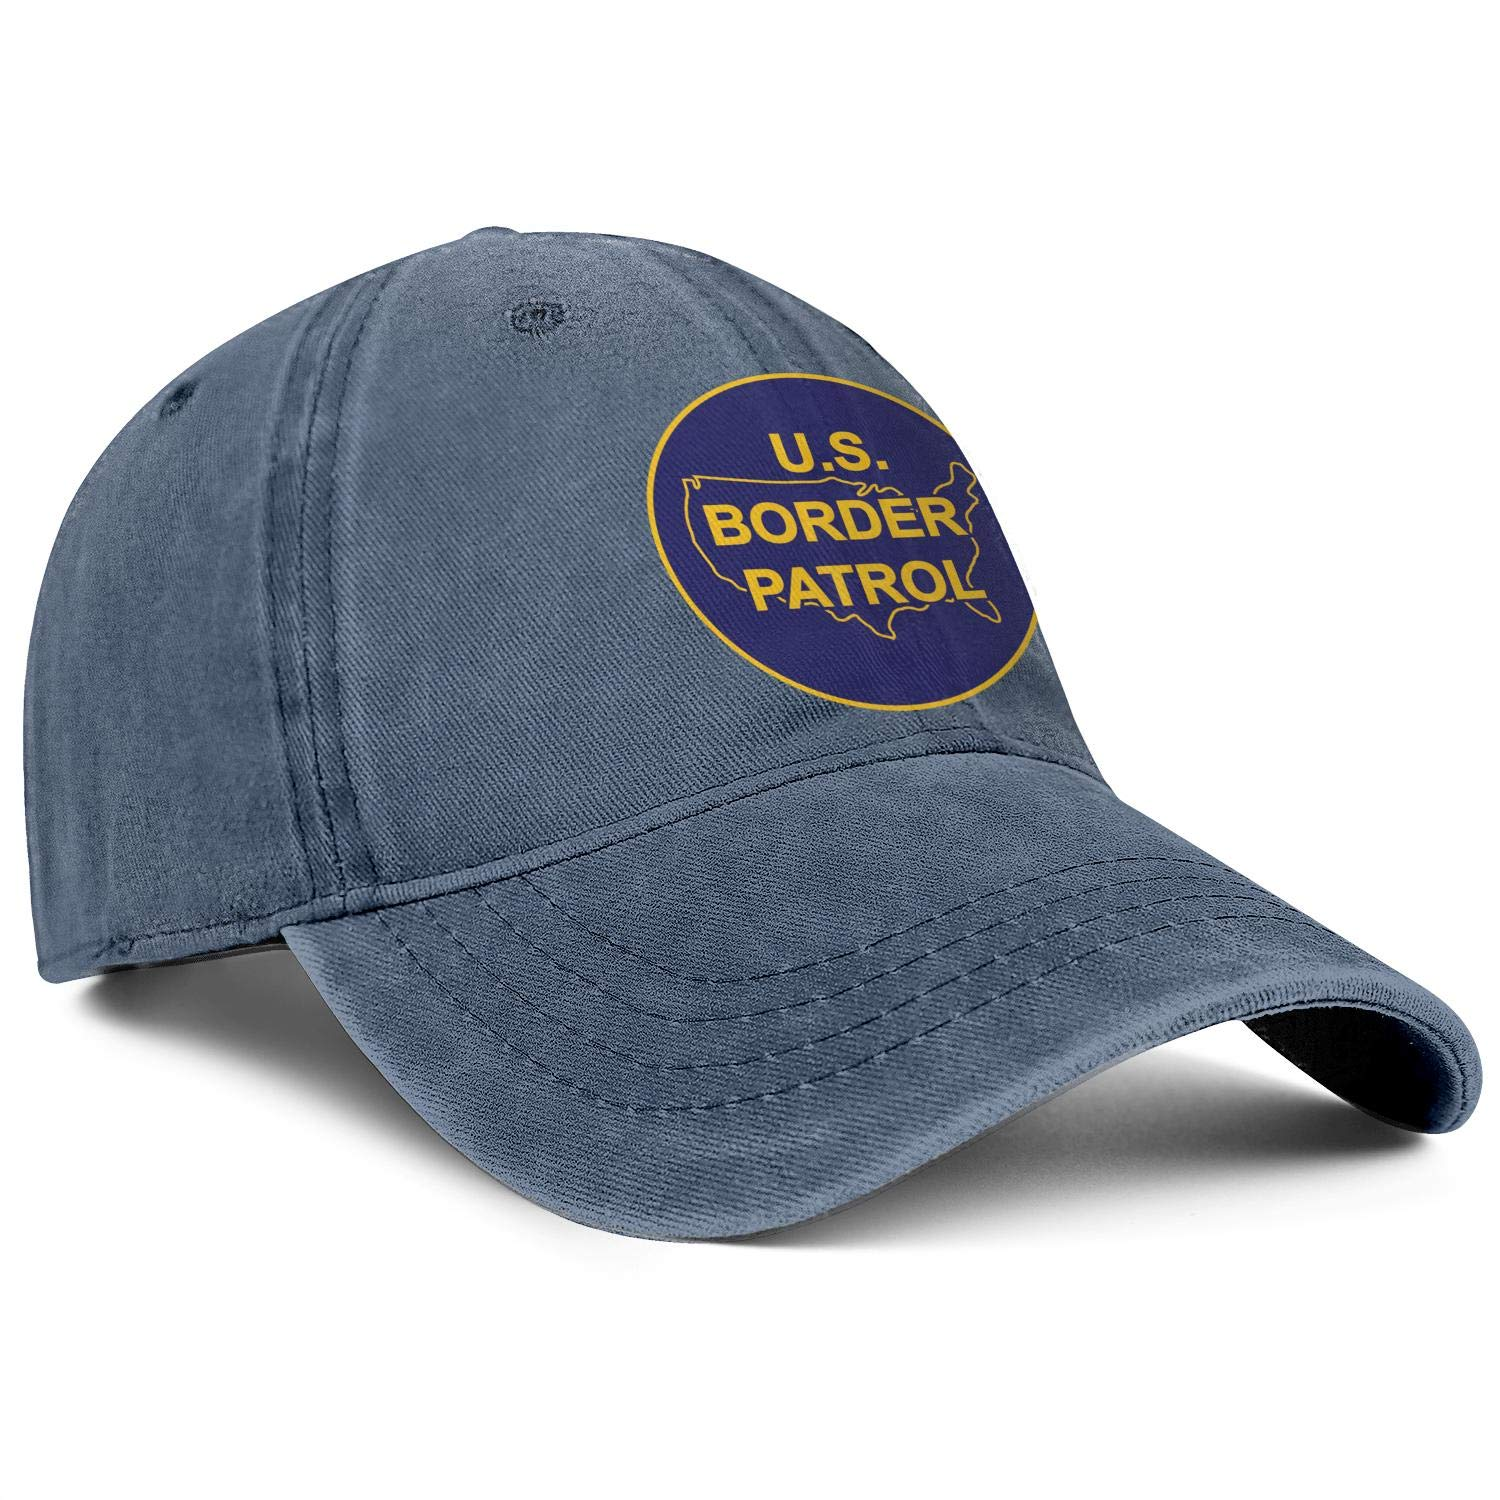 United States Army Medical Command Logos Low Profile Washed Distressed Baseball Caps Smooth Twill Denim Dad-Hats Adult